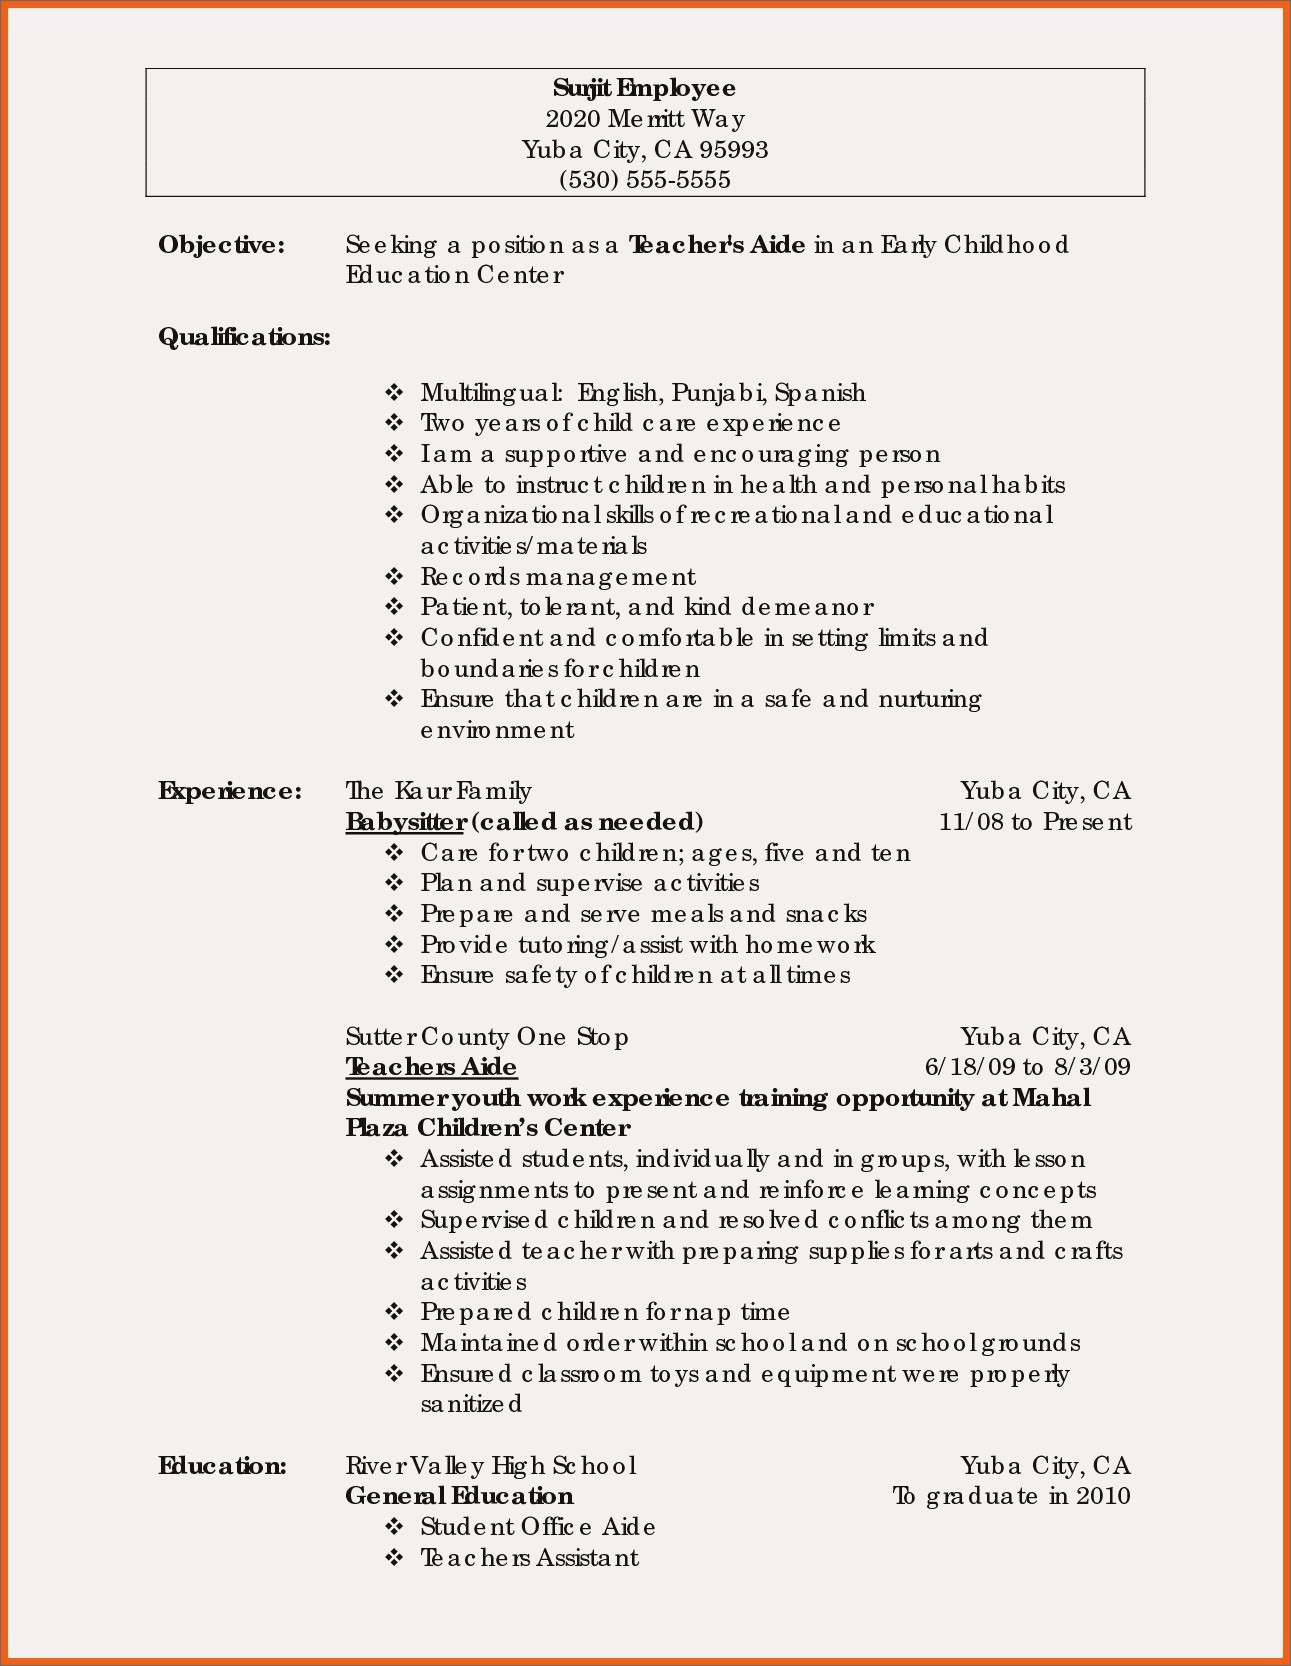 Resumes Samples Skills - Early Childhood Education Resume Samples New Teacher Resume Example